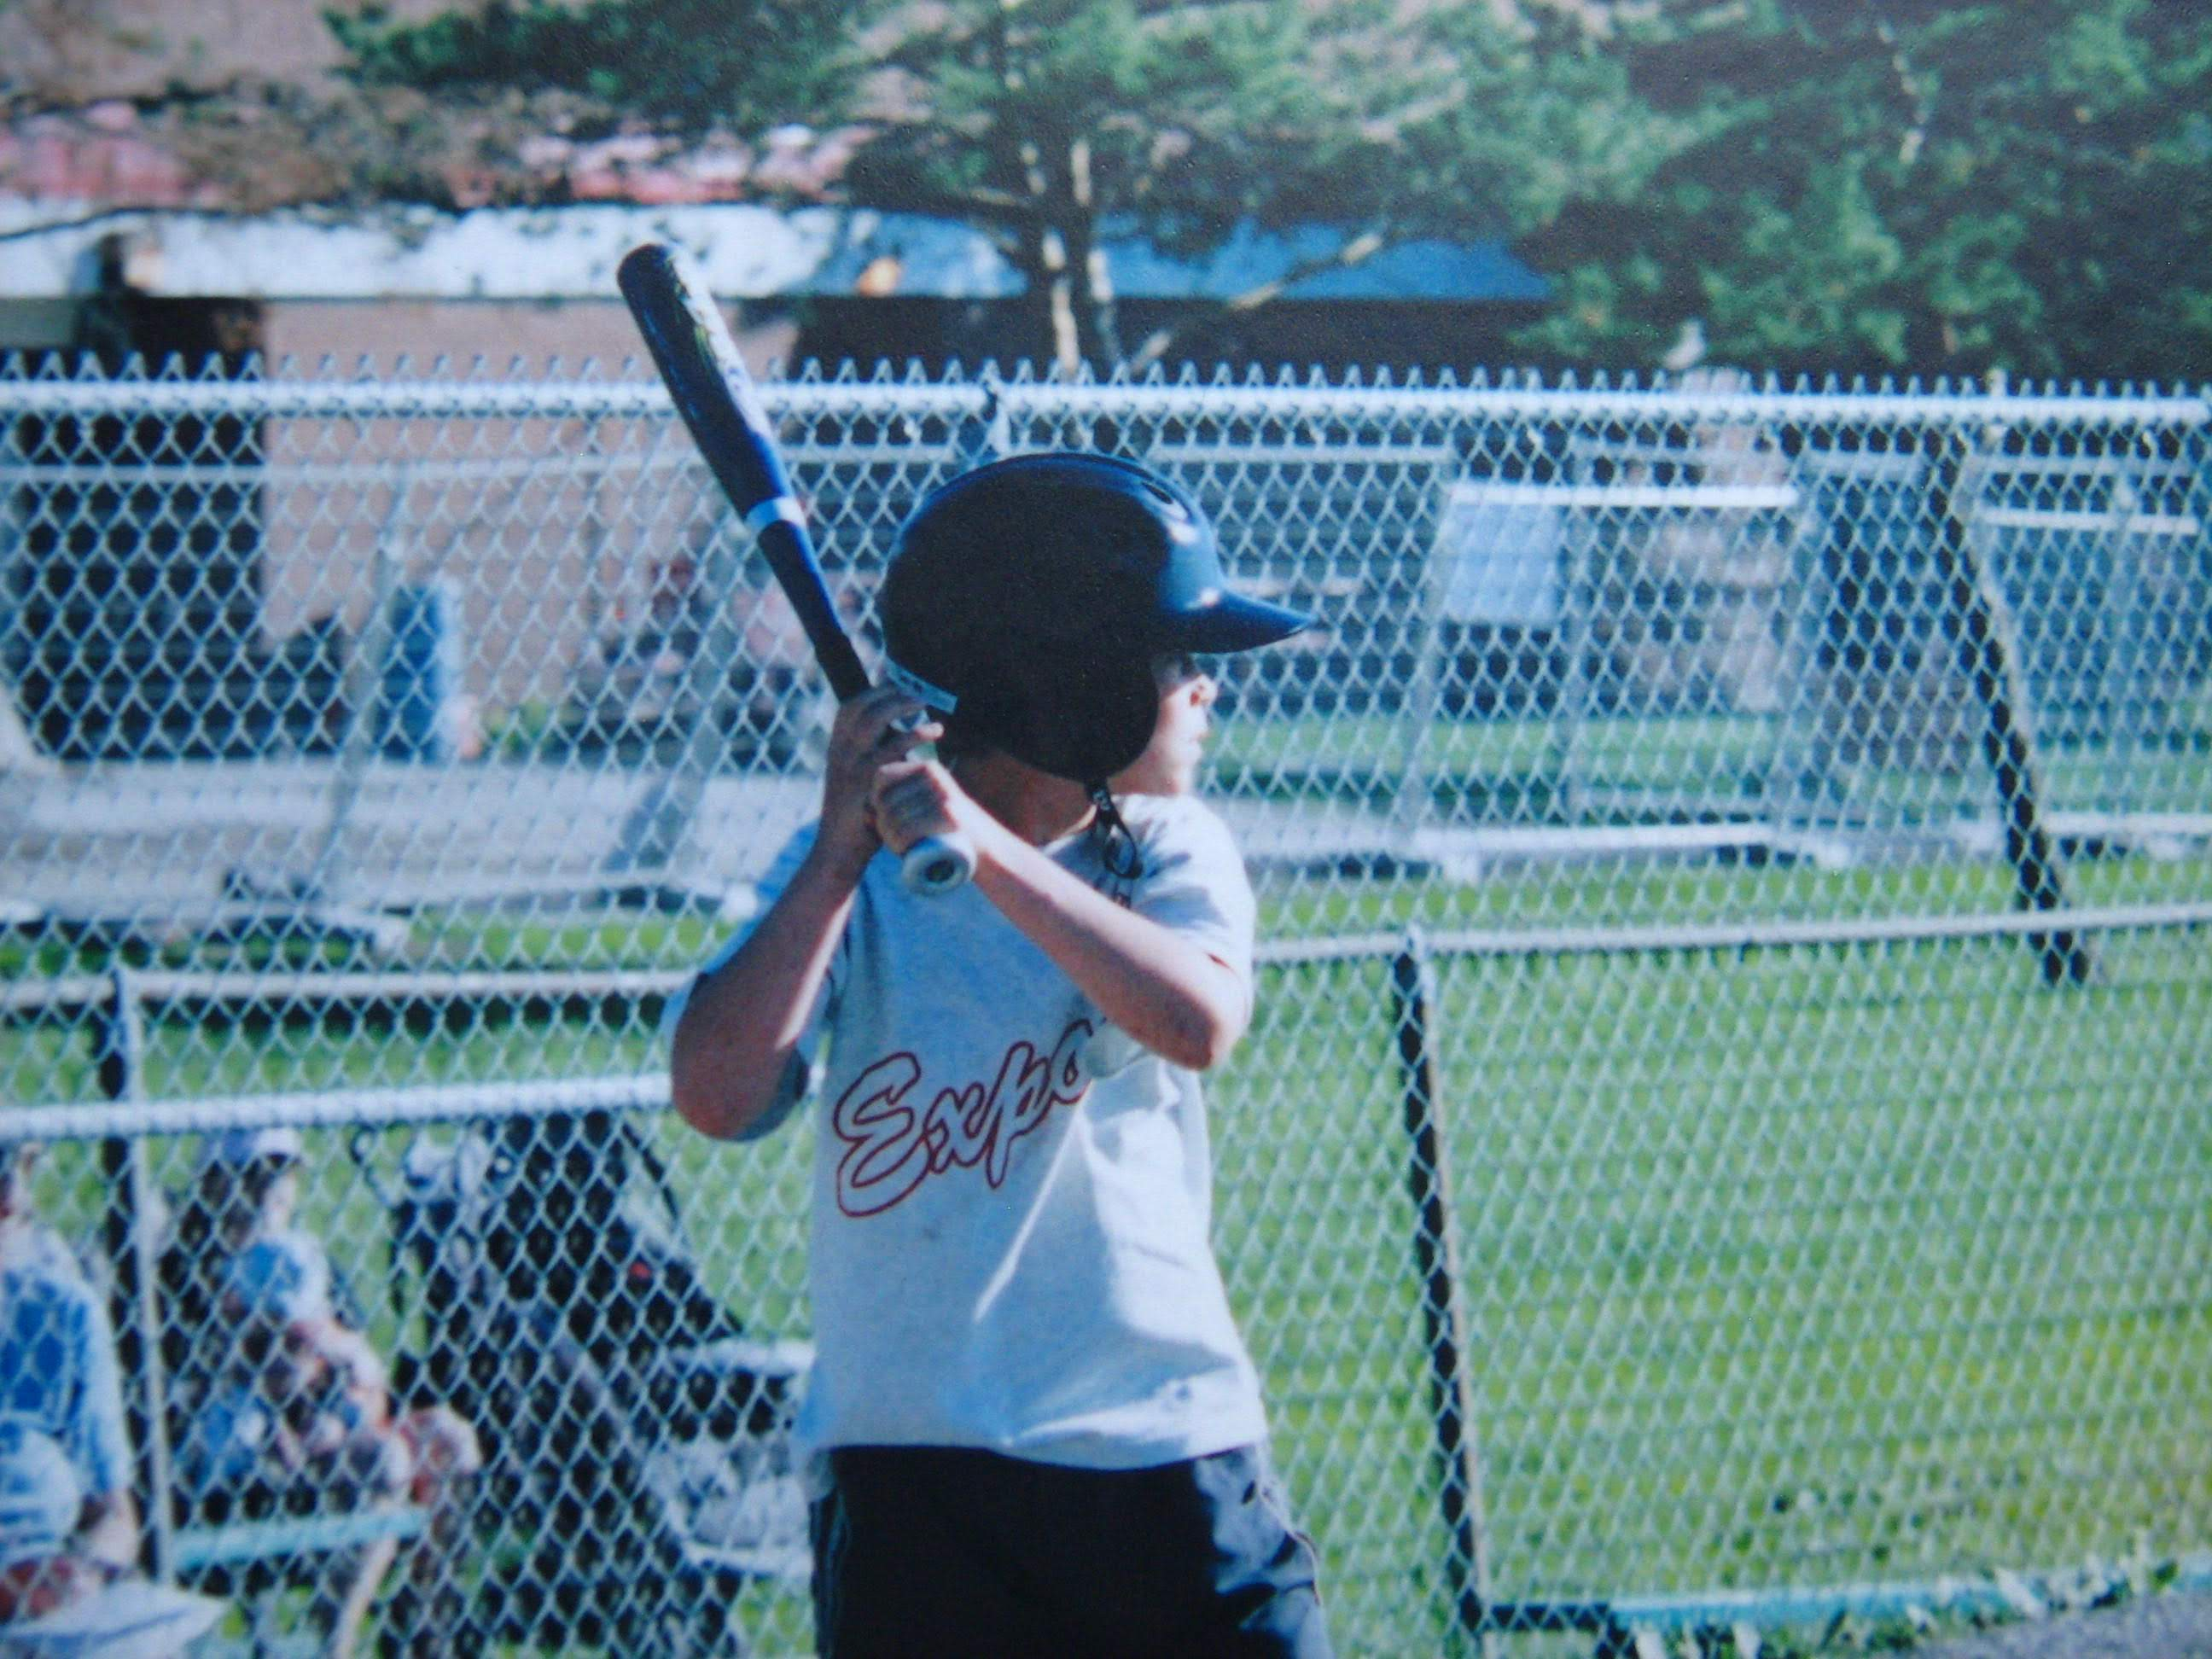 Boy at bat